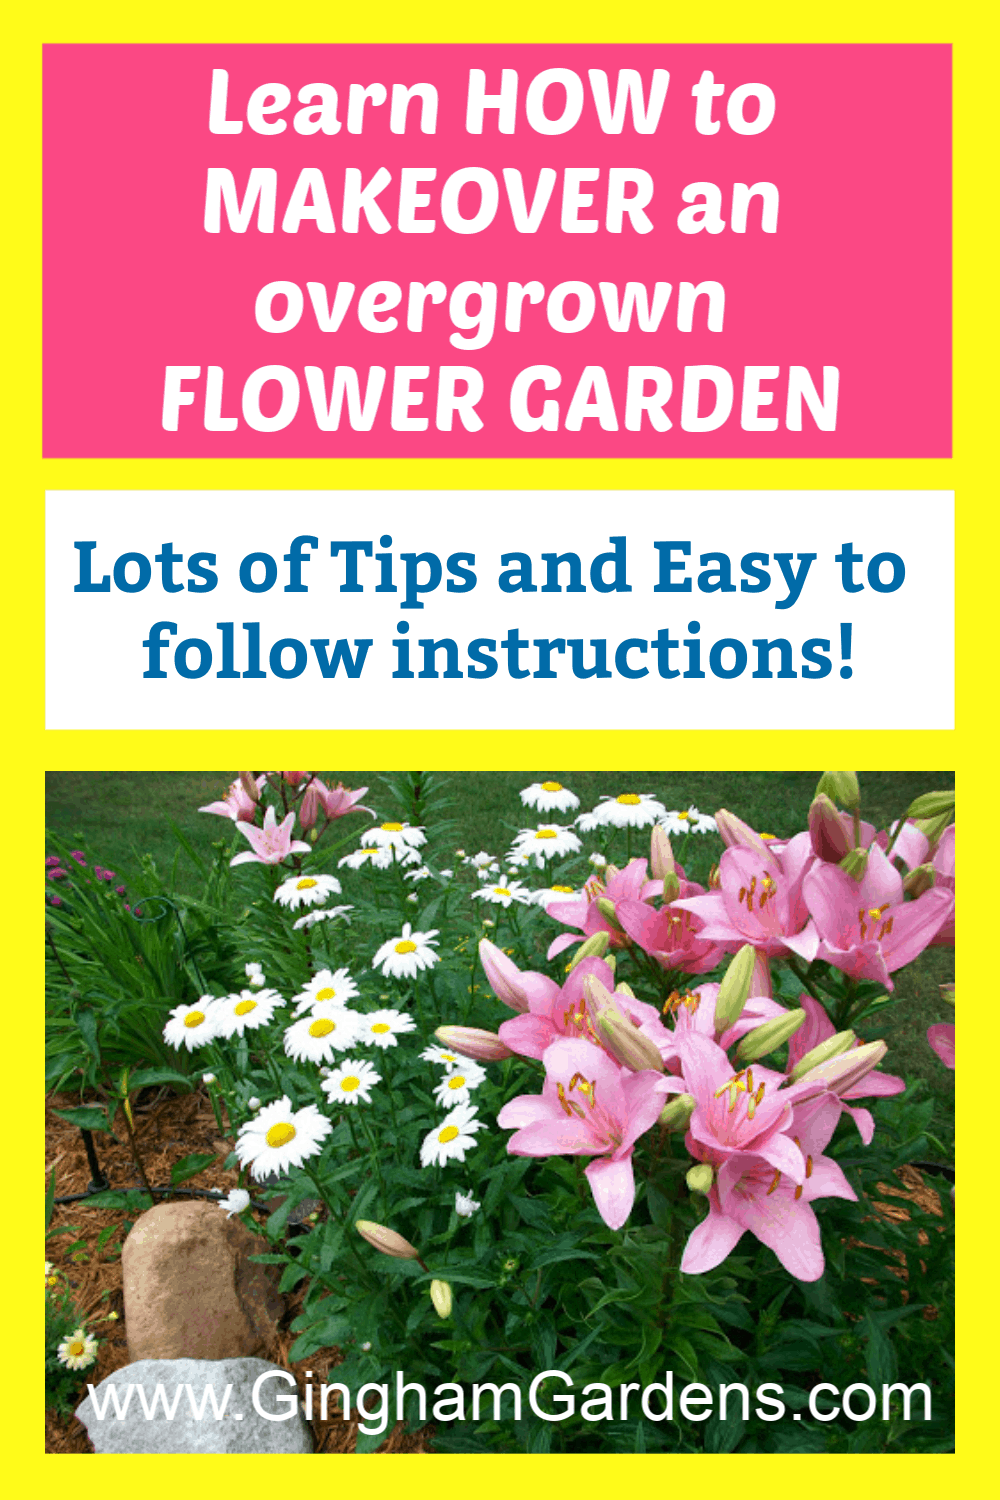 Image of a Flower Garden with Text Overlay - Learn How to Makeover an overgrown Flower Garden